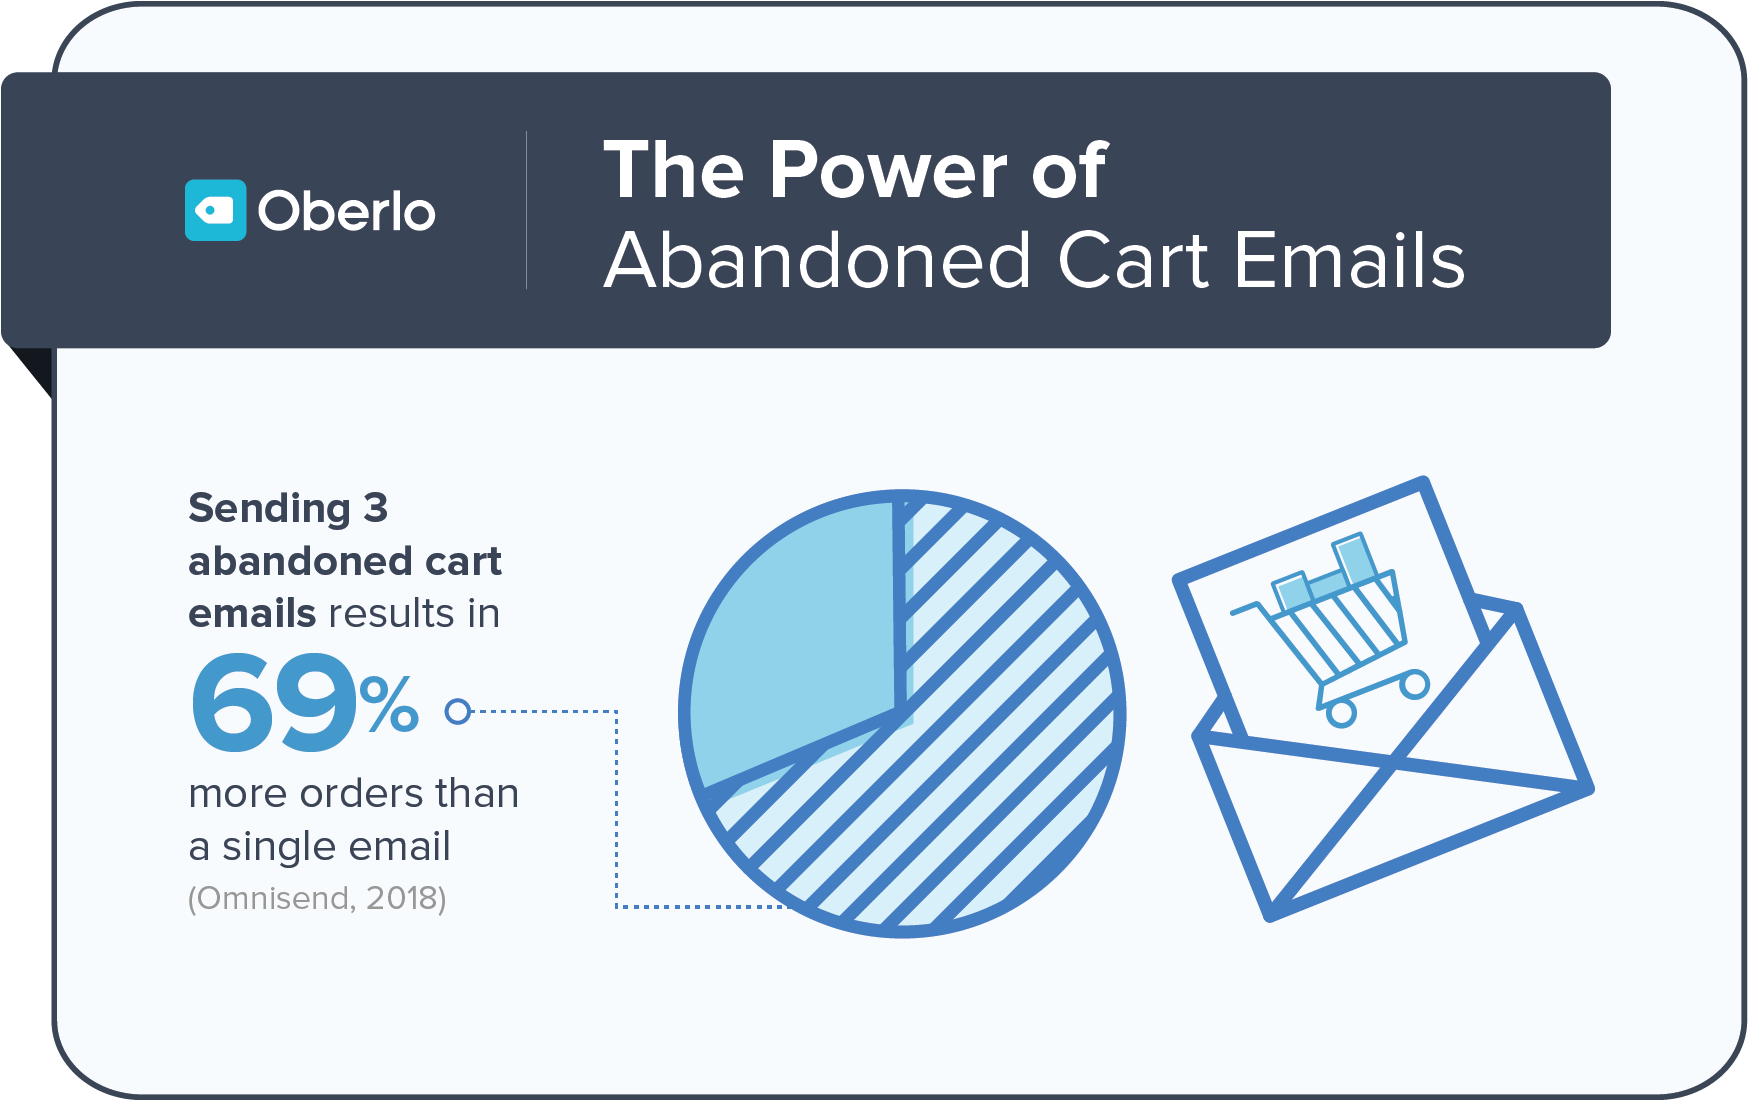 the power of abandoned cart emails